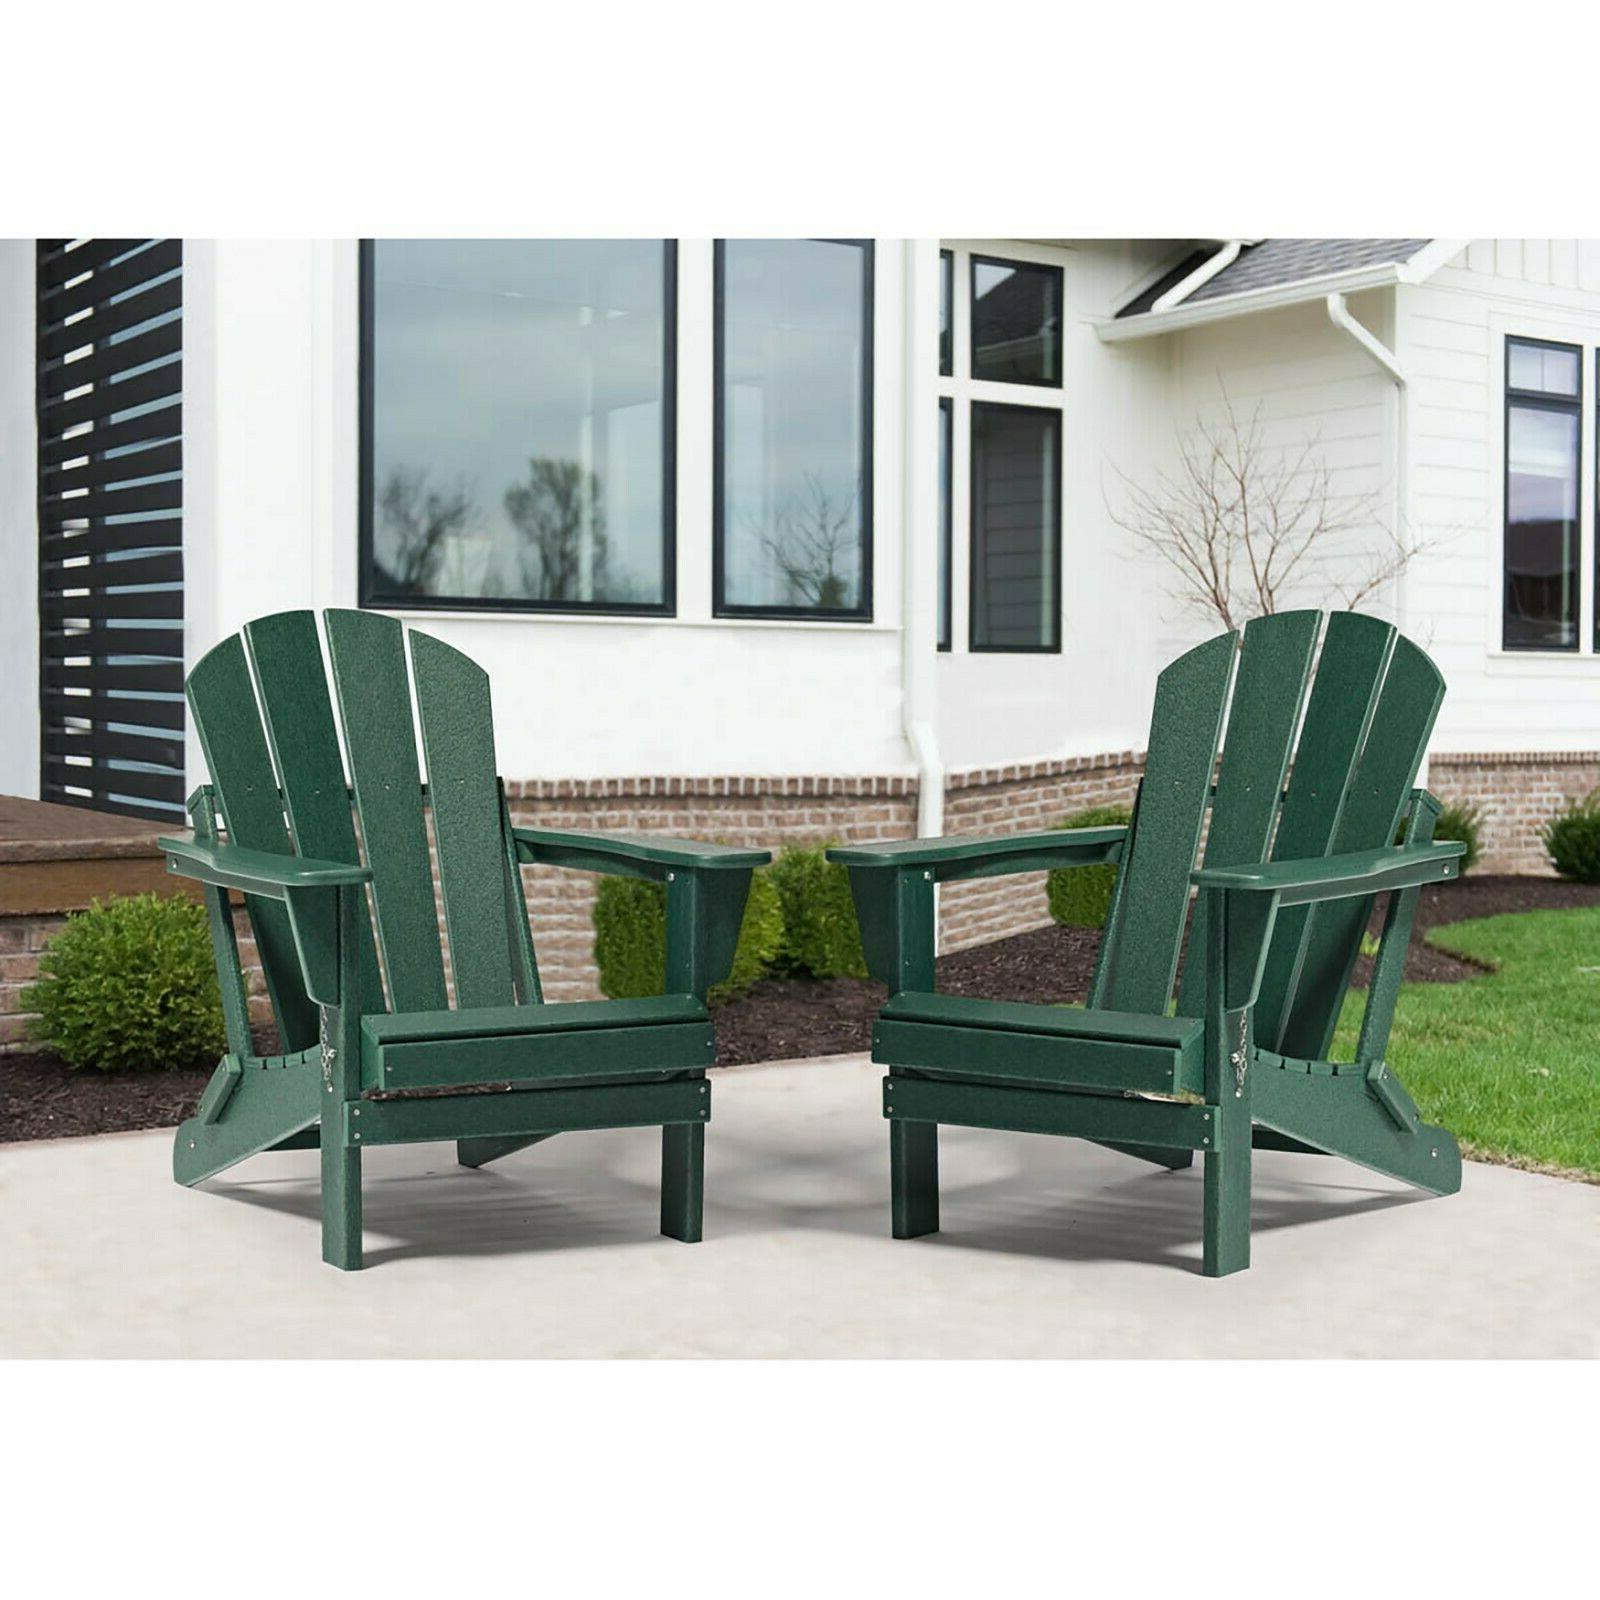 2 Chairs Plastic Lounger